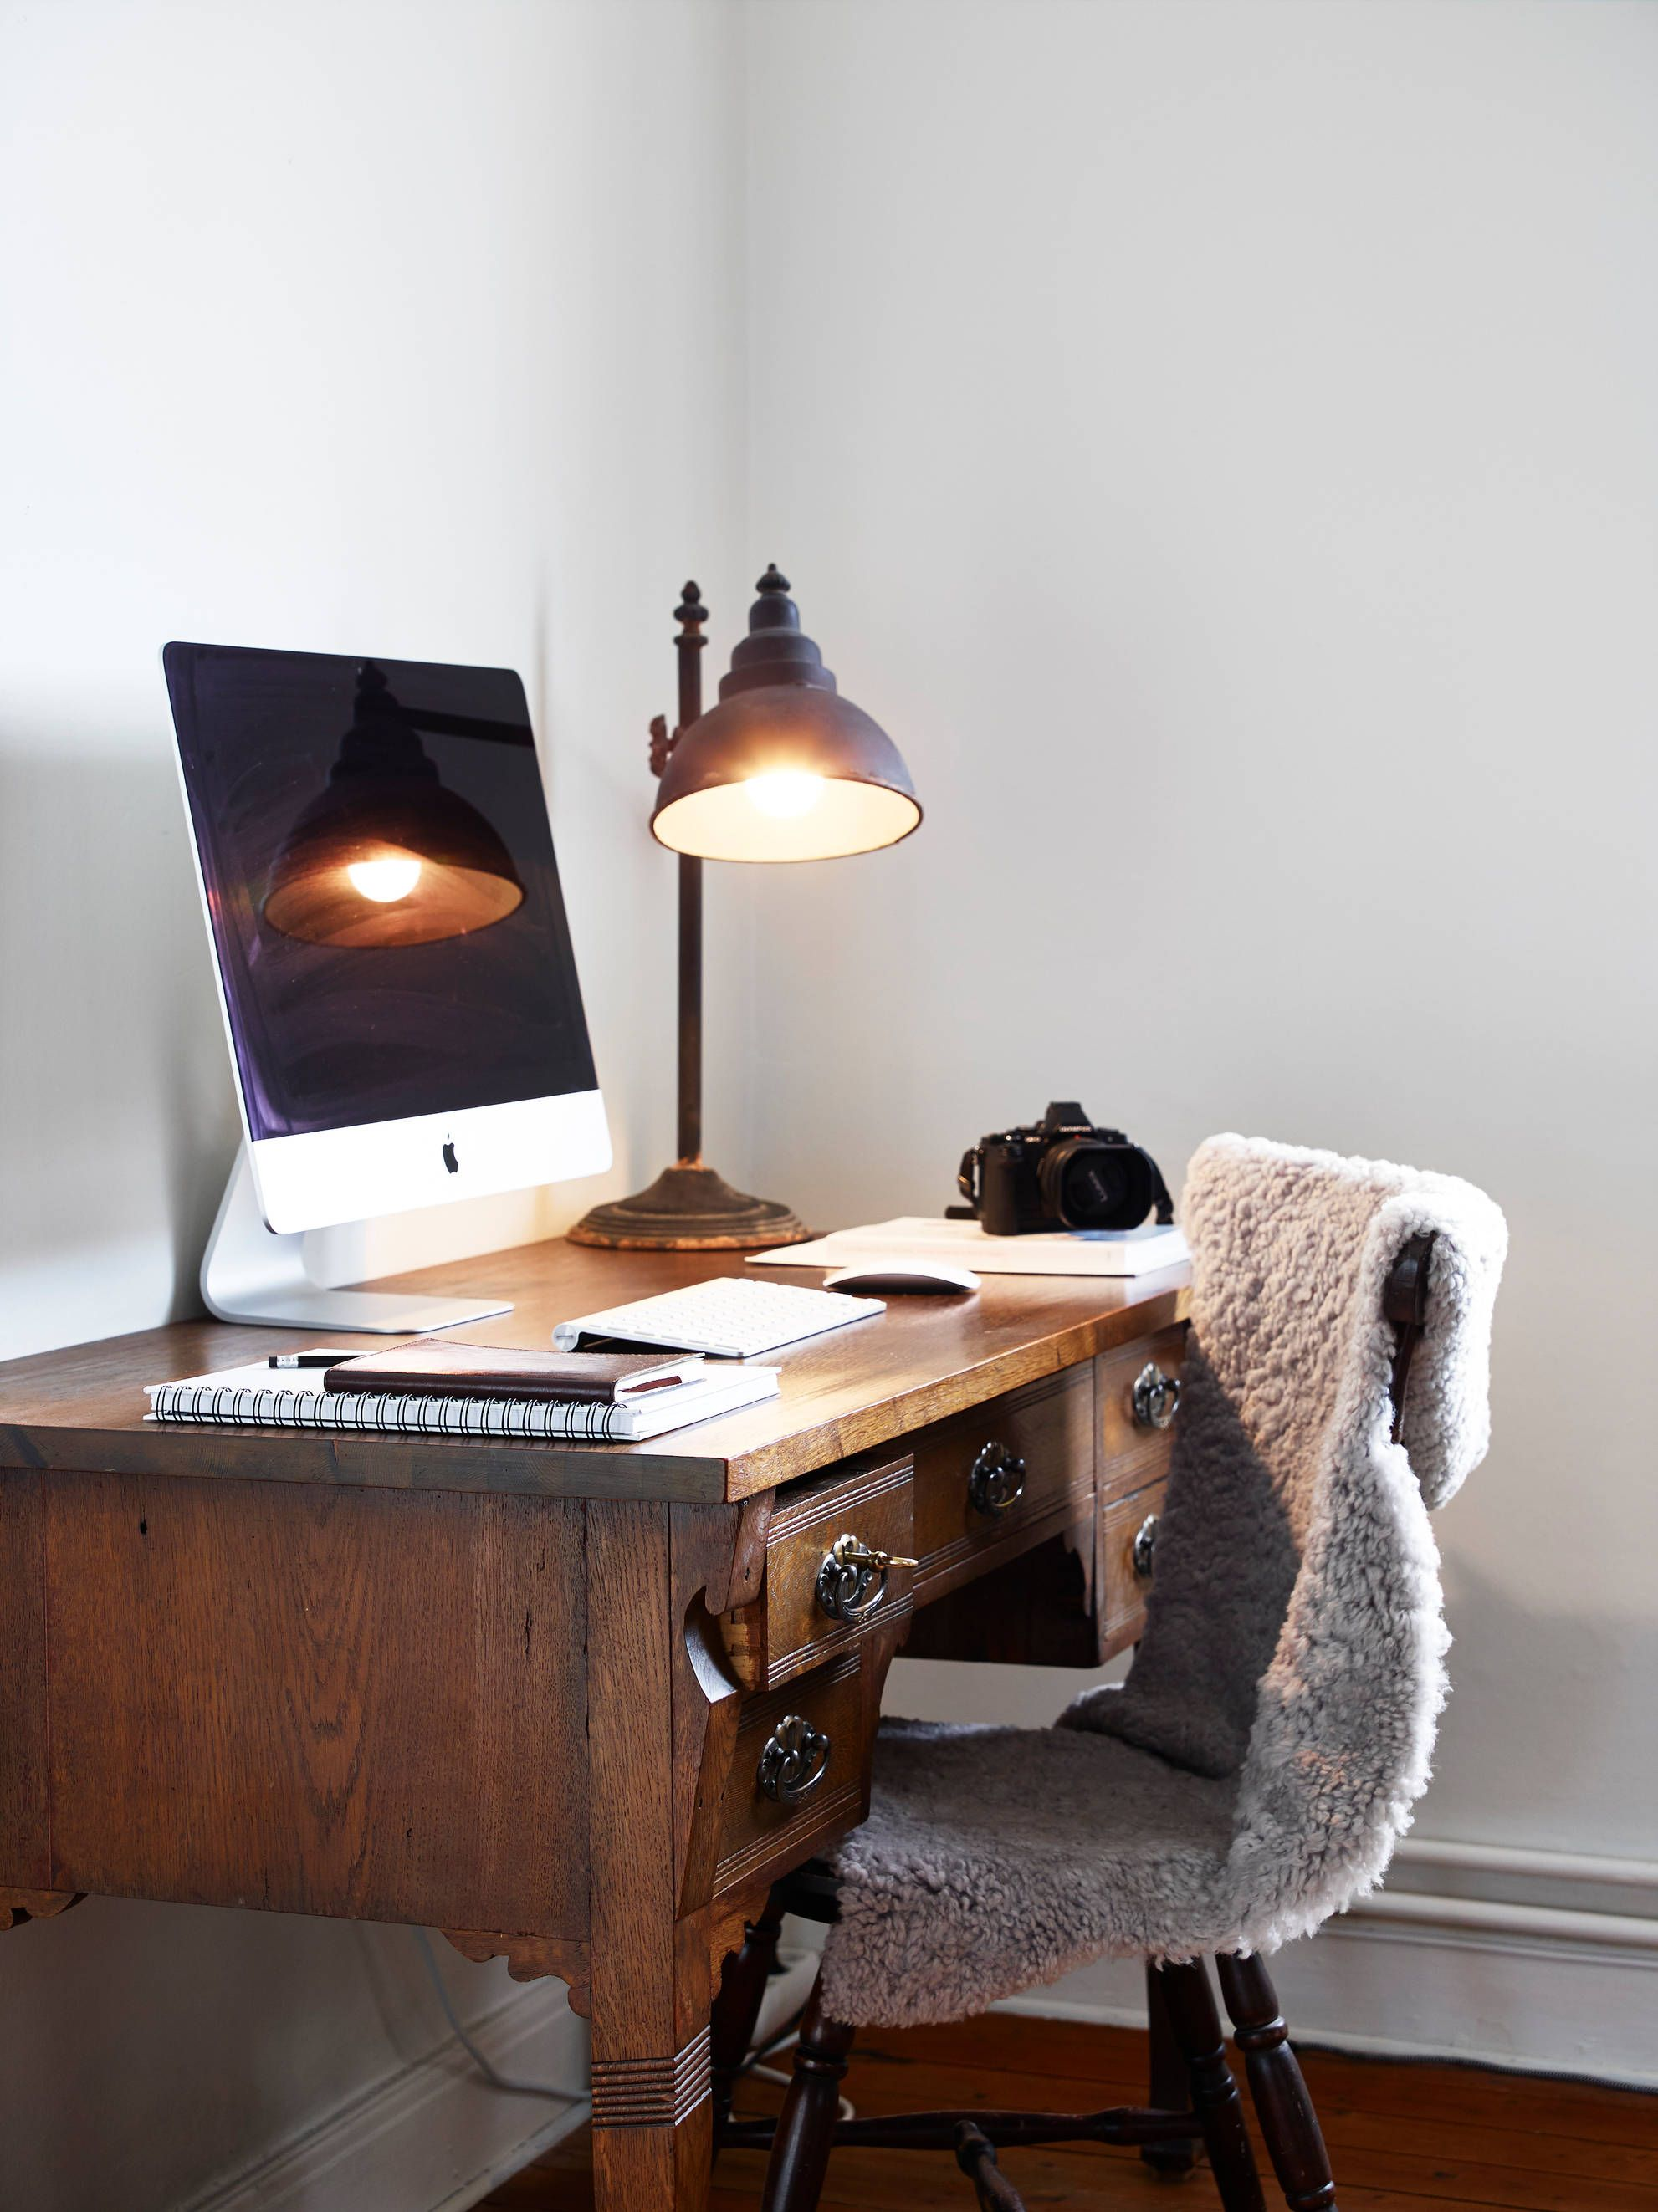 Pin by daniela wiking on workspace pinterest spaces and interiors